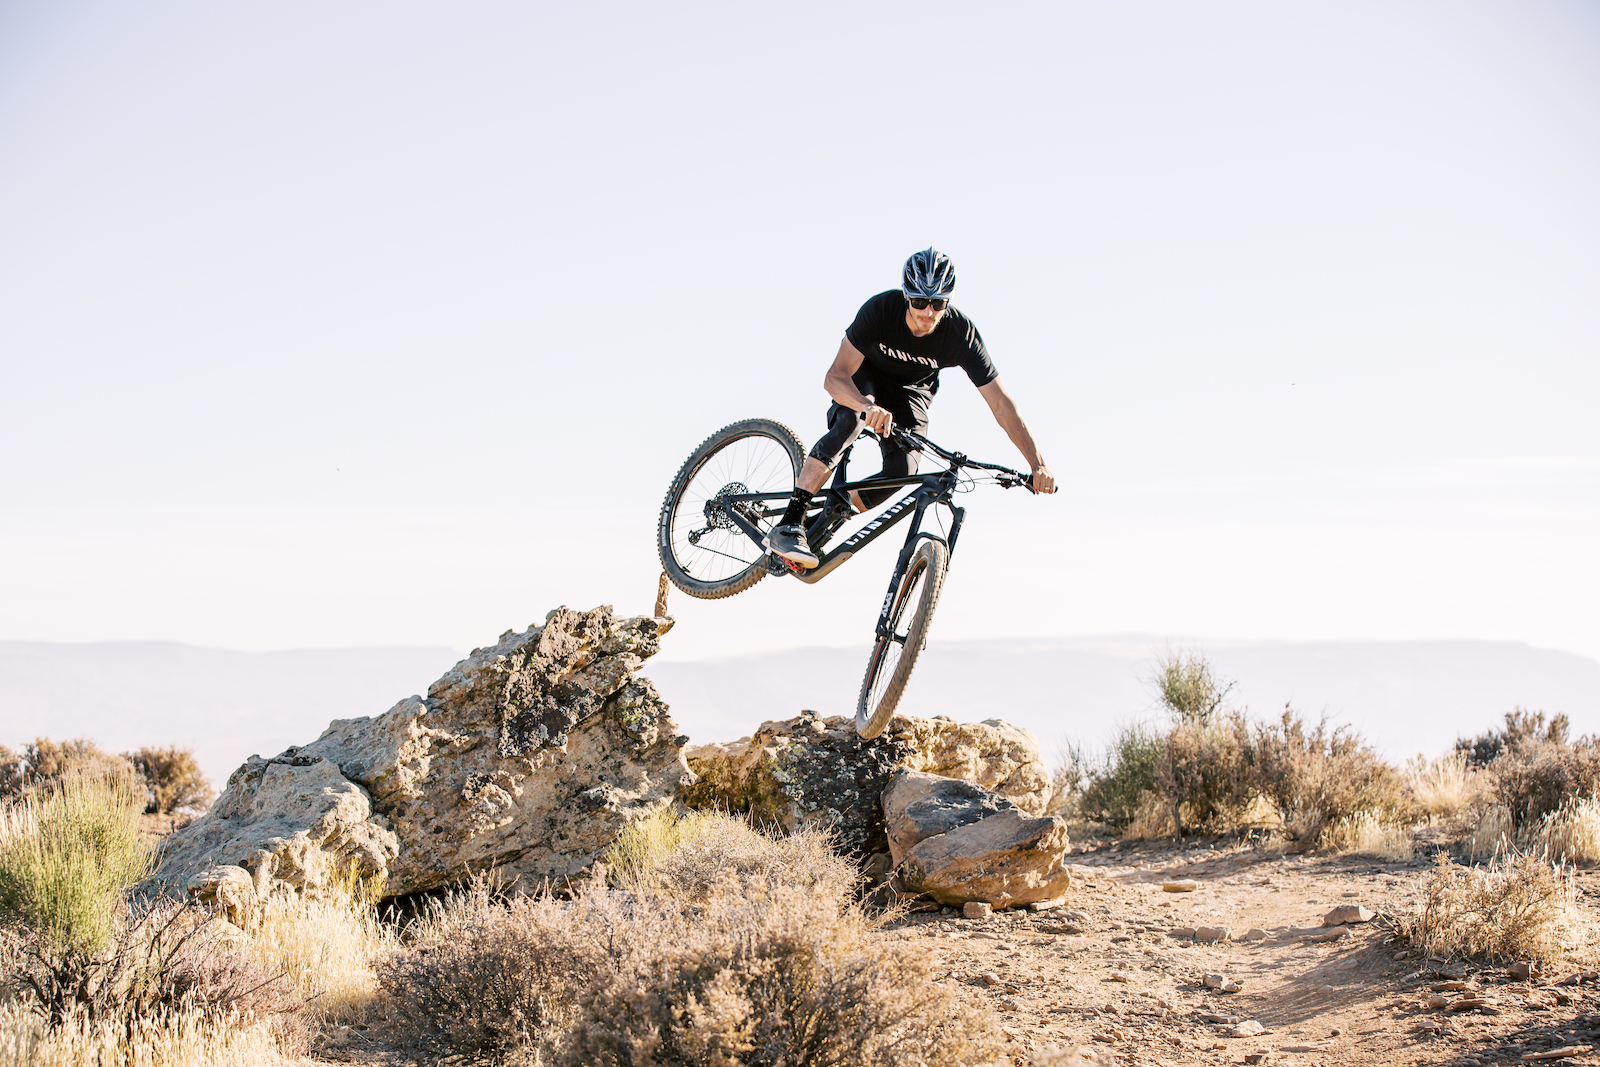 Bringhurst blends big air with technical flow in a way few other riders can match.